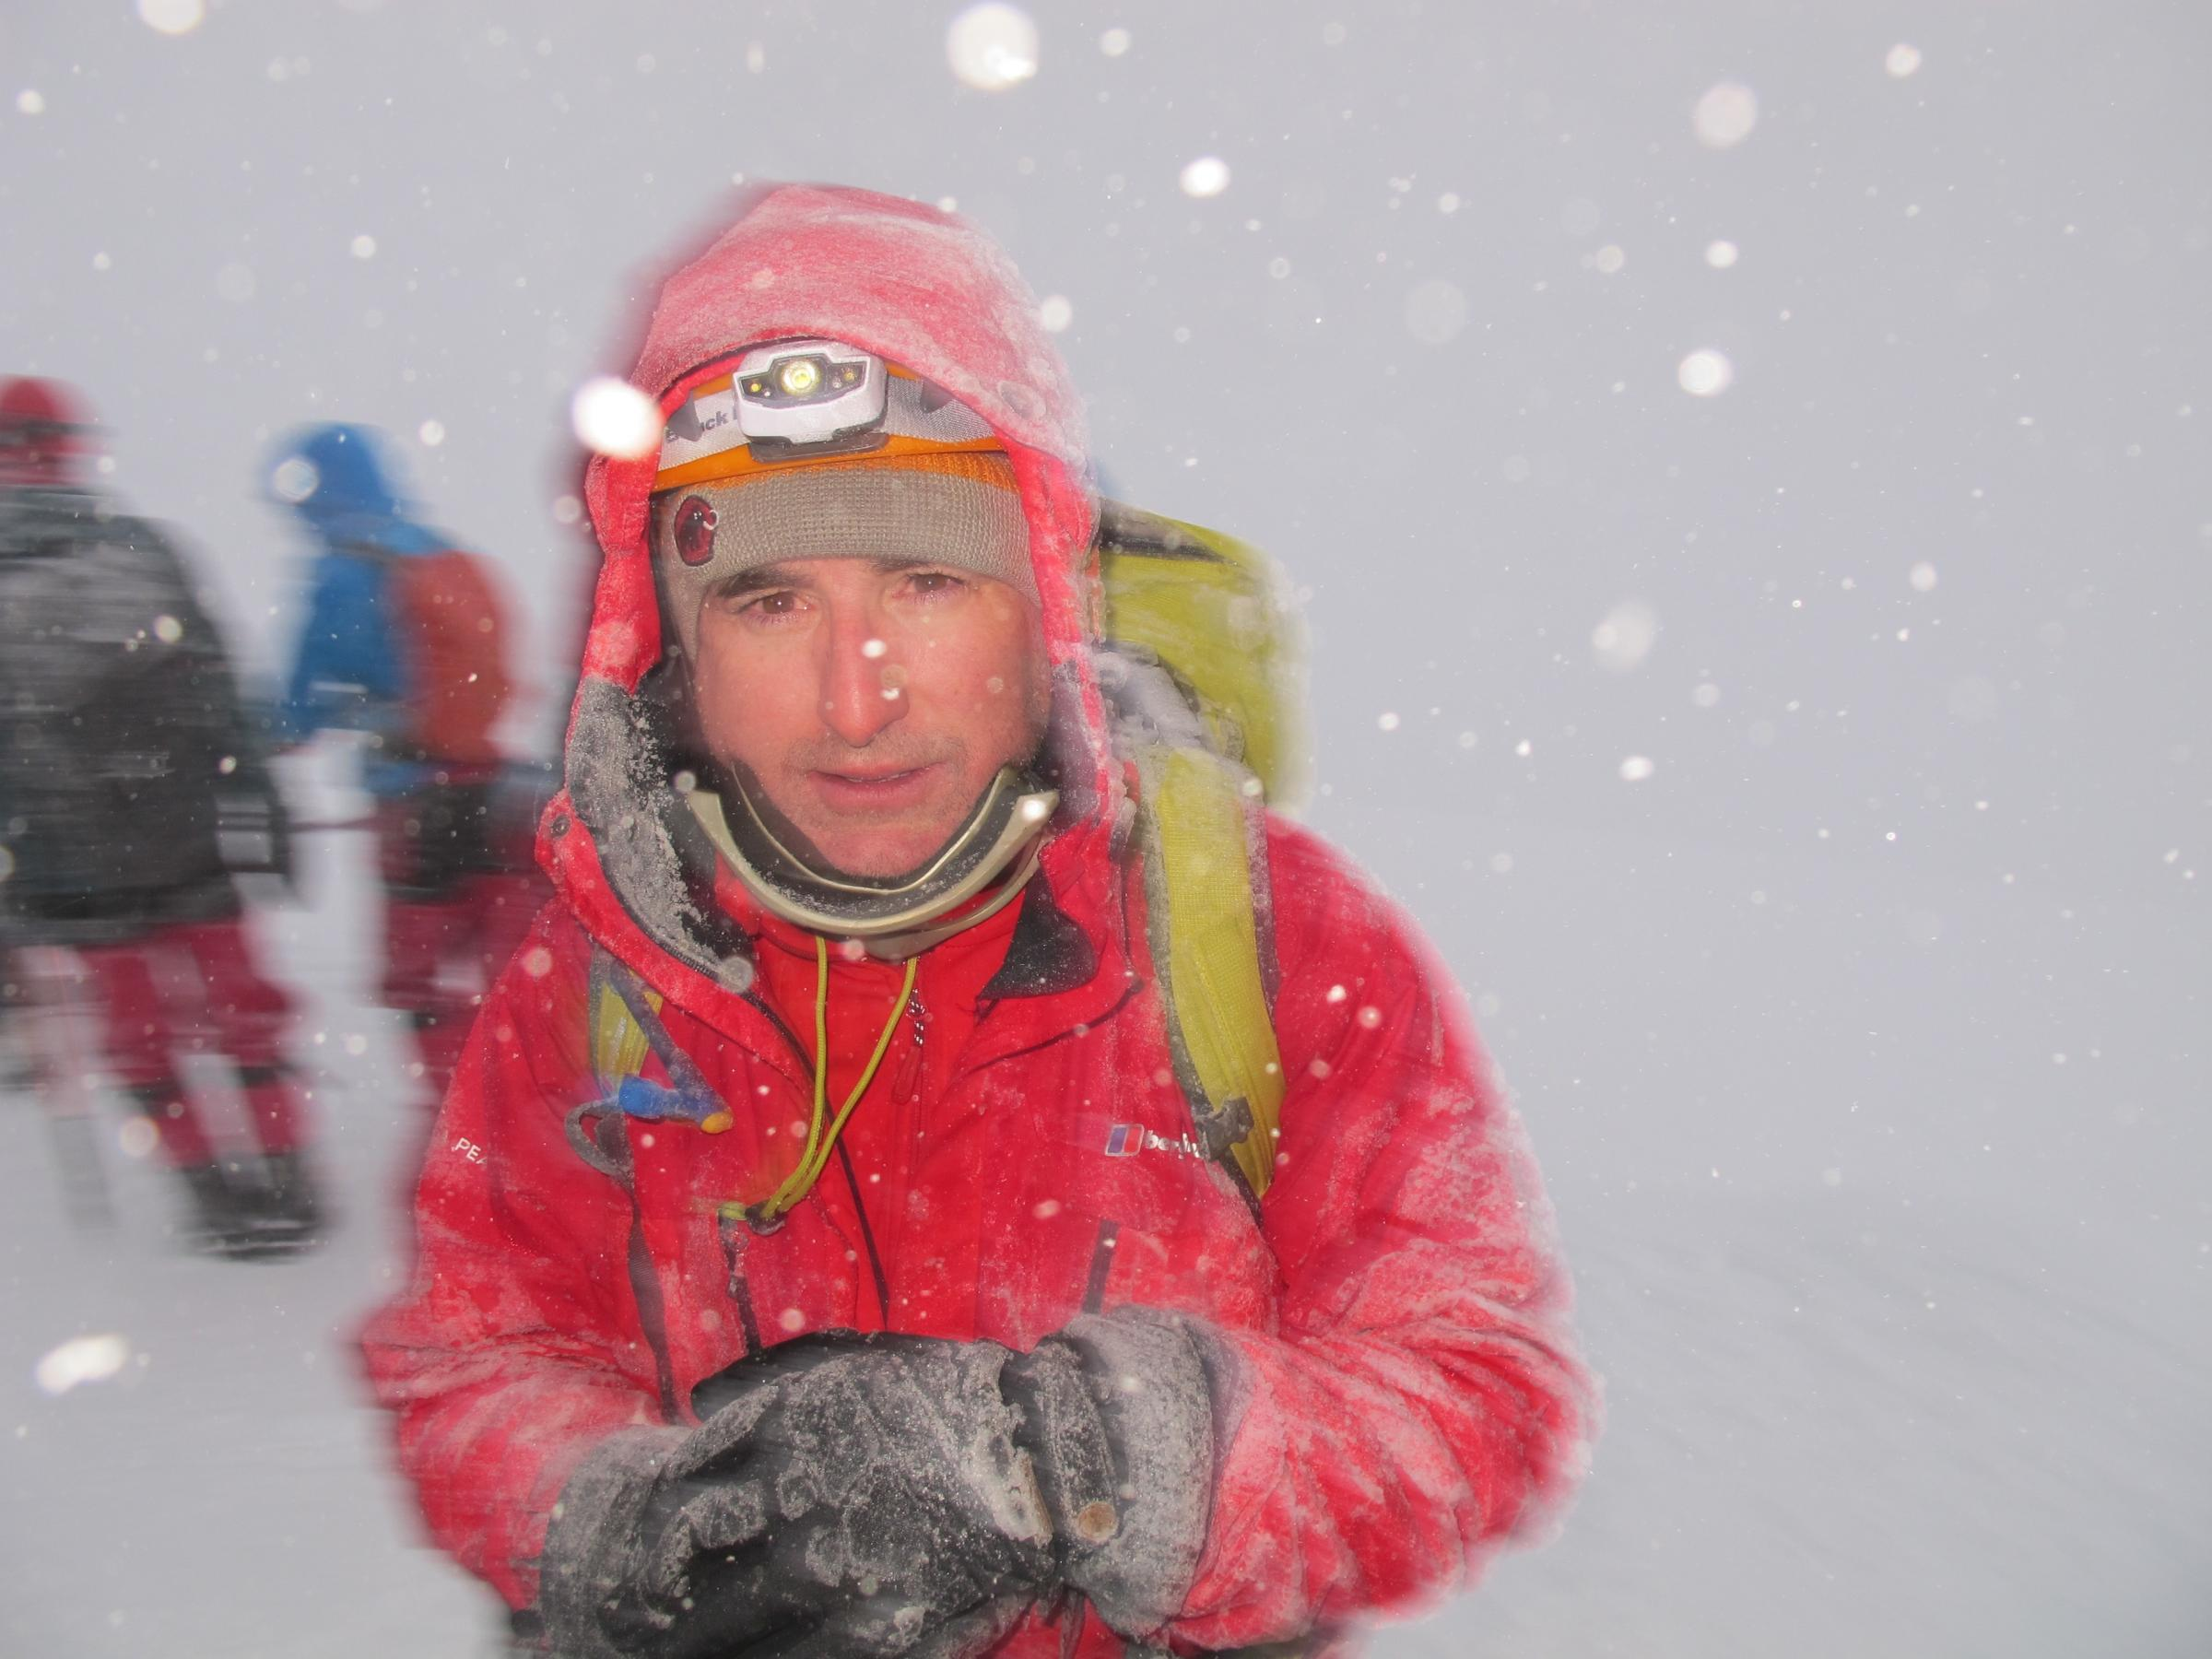 MP battles snow to conquer volcano summit